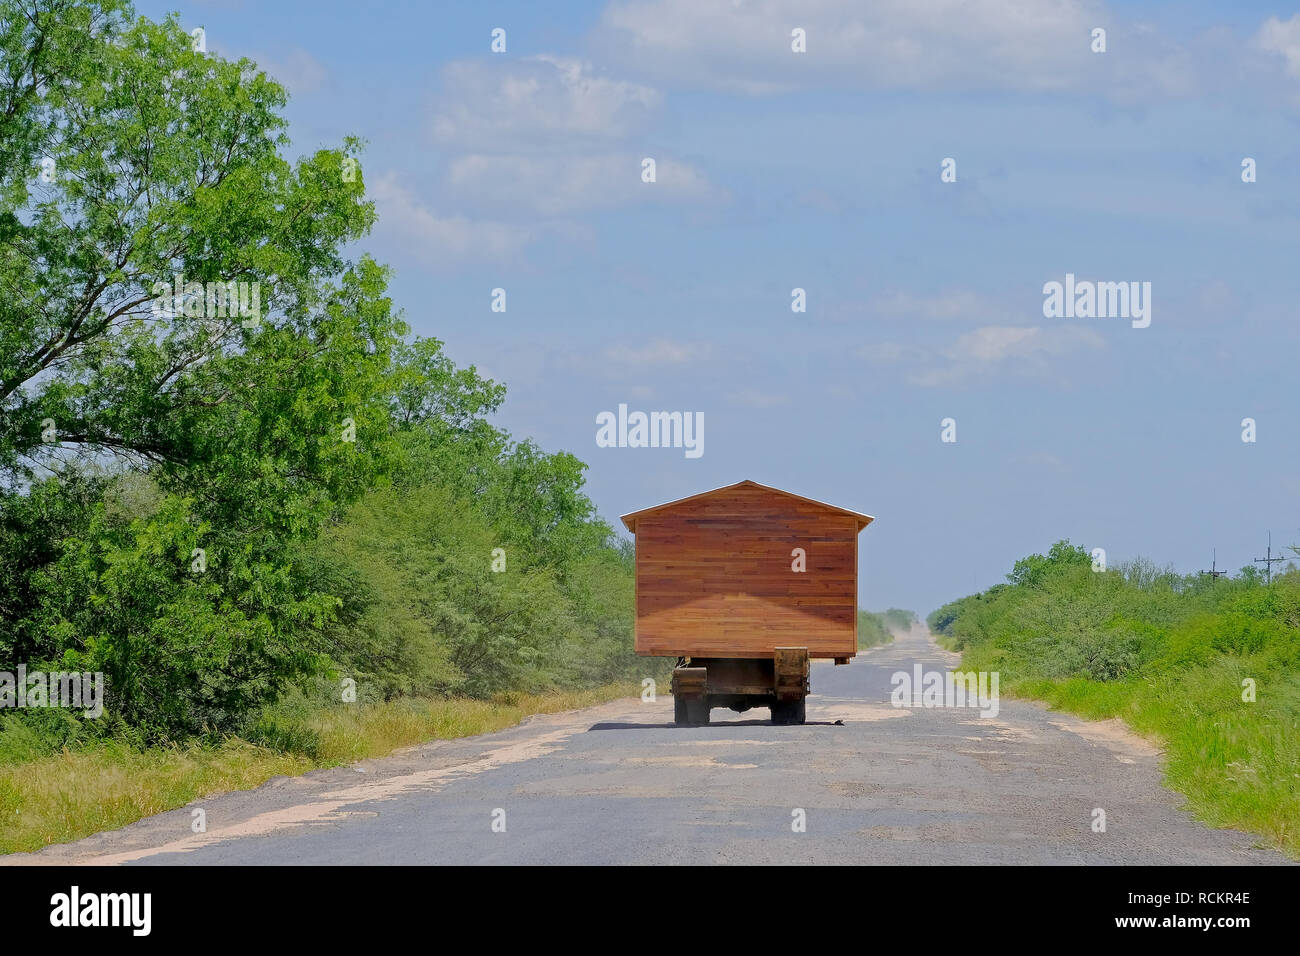 Prefab House Moving On A Truck And Looking Like A Motorhome Rv Gran Chaco Paraguay Stock Photo Alamy